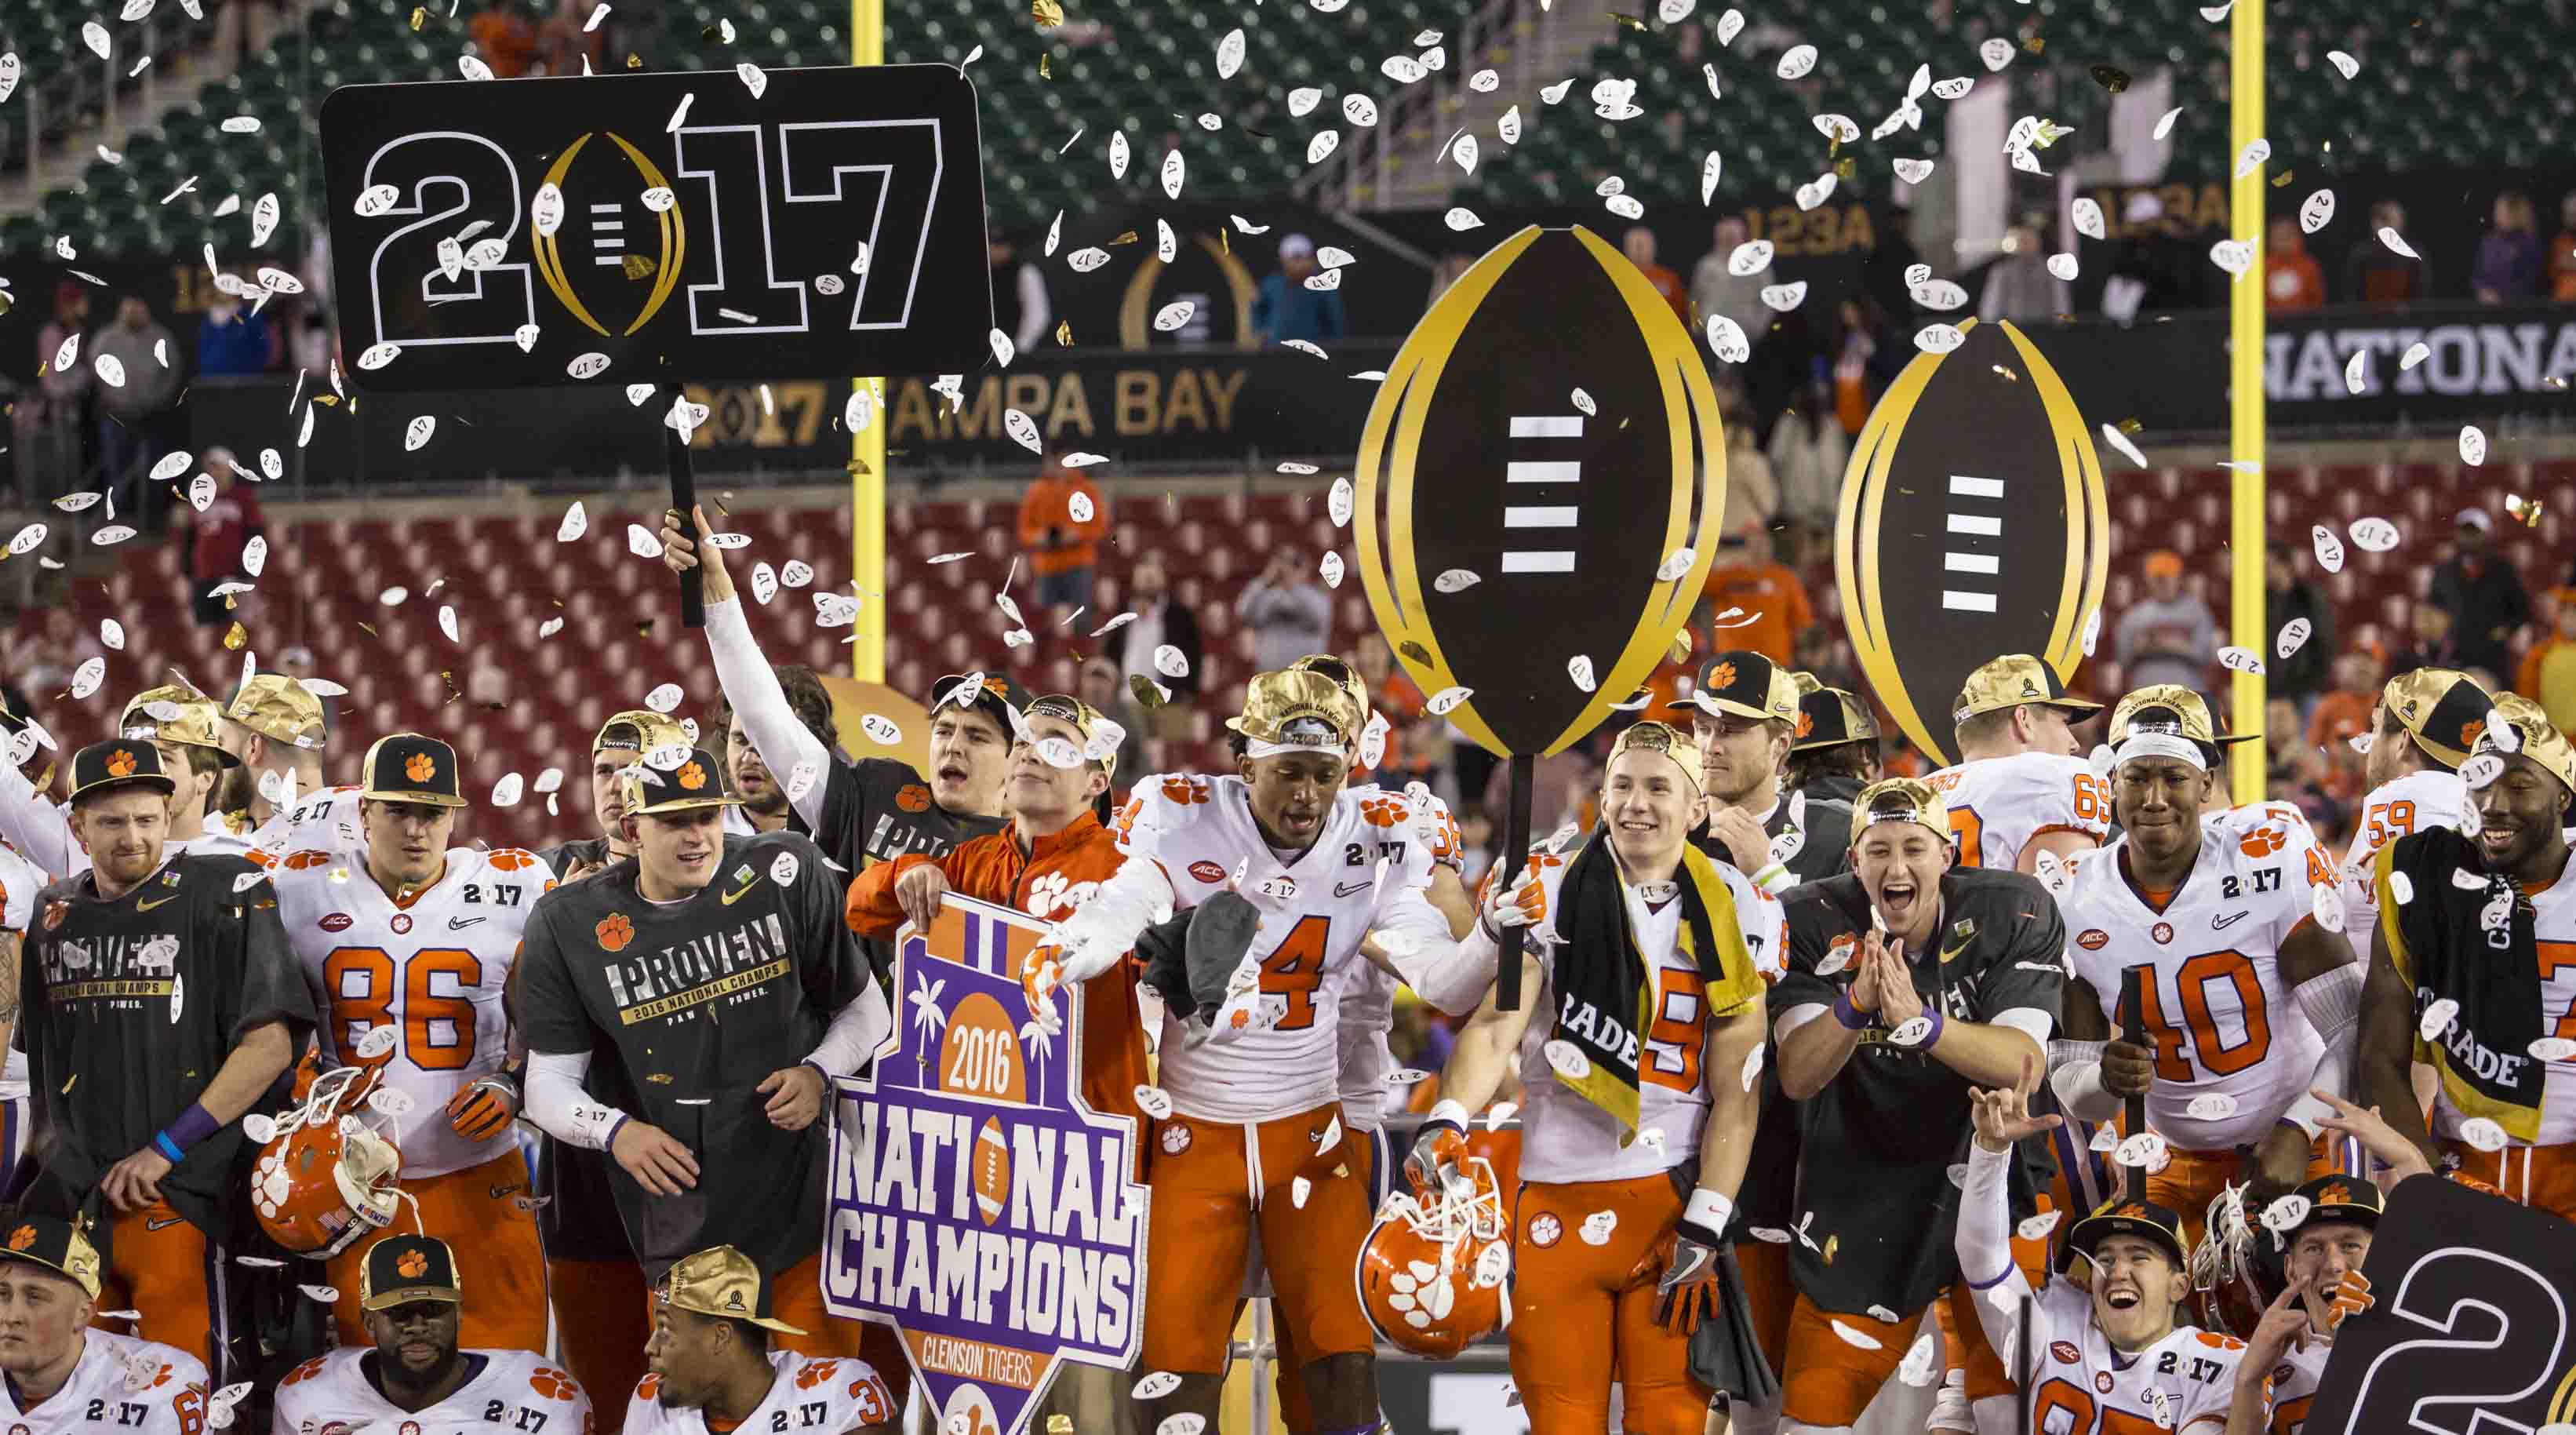 2017 05 kickoff time for national championship game - Clemson 35 Alabama 31 College Football Playoff National Championship On Jan 9 2017